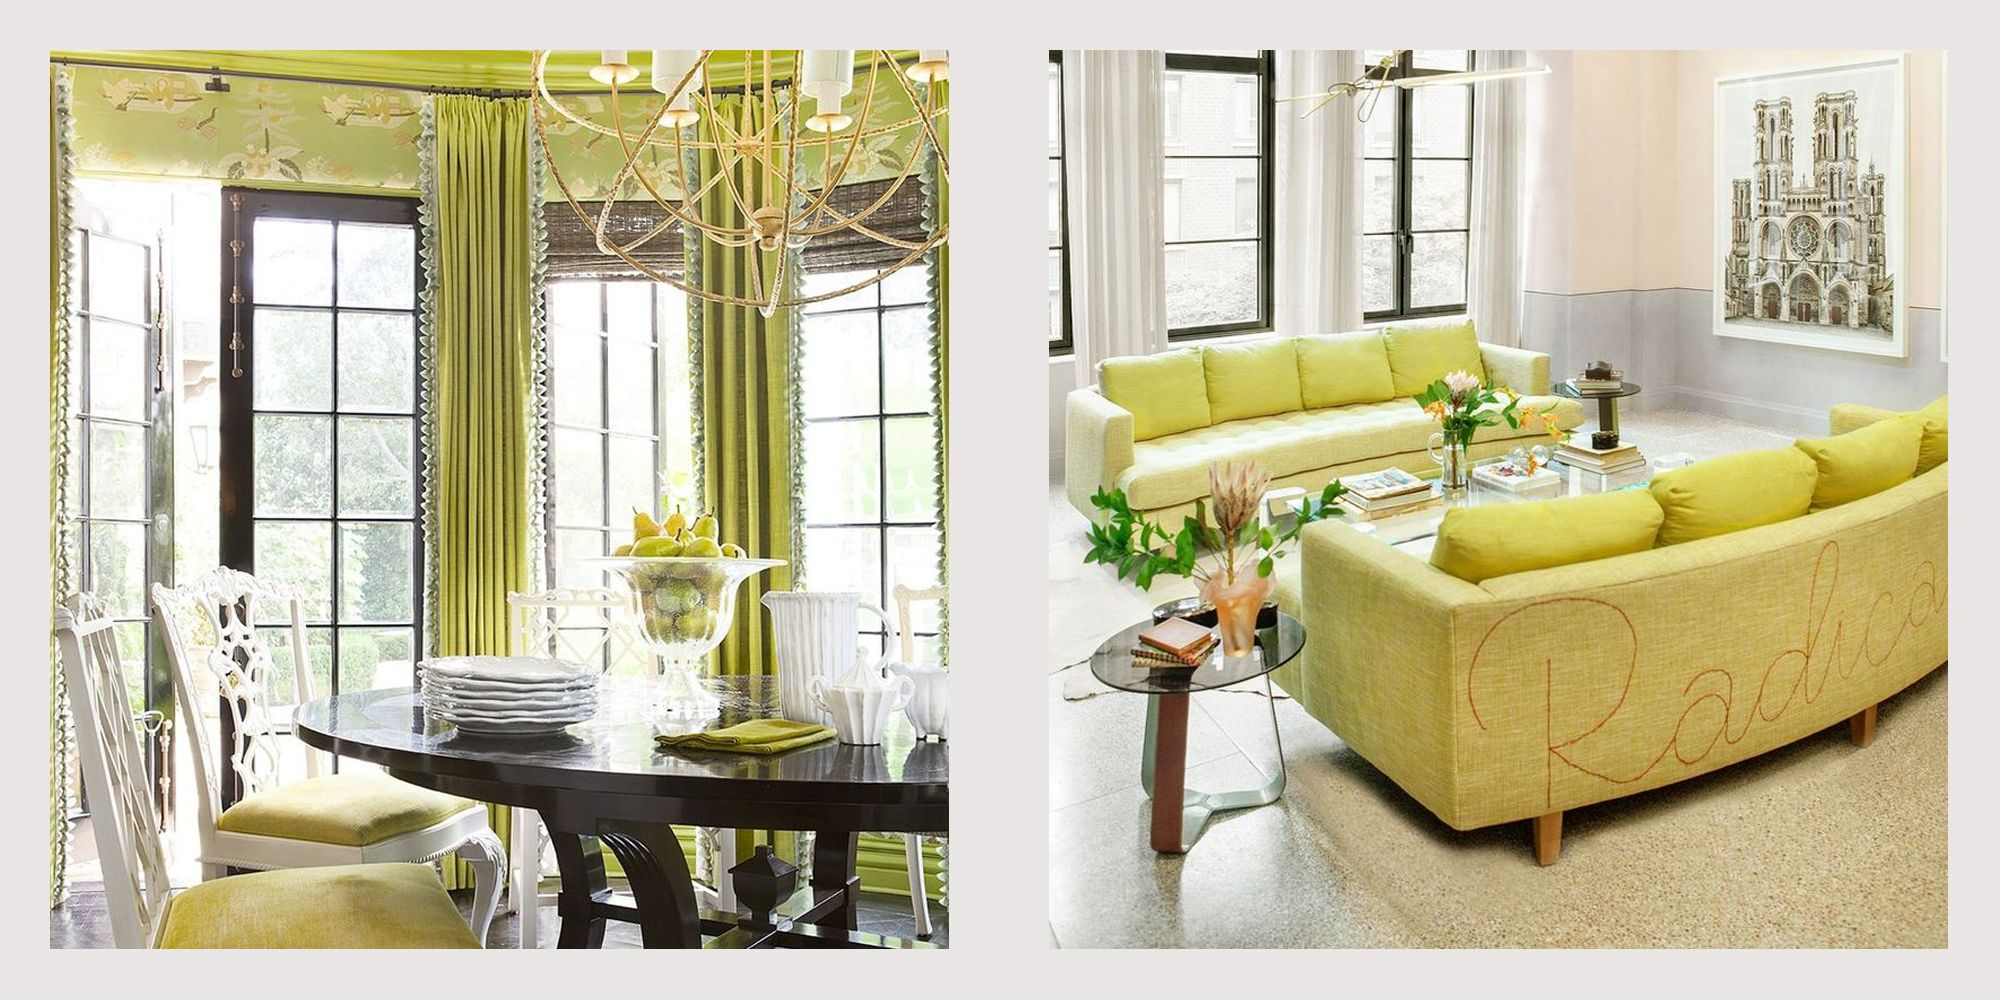 10+ Chartreuse Color Ideas to Brighten Your Dreariest Spaces